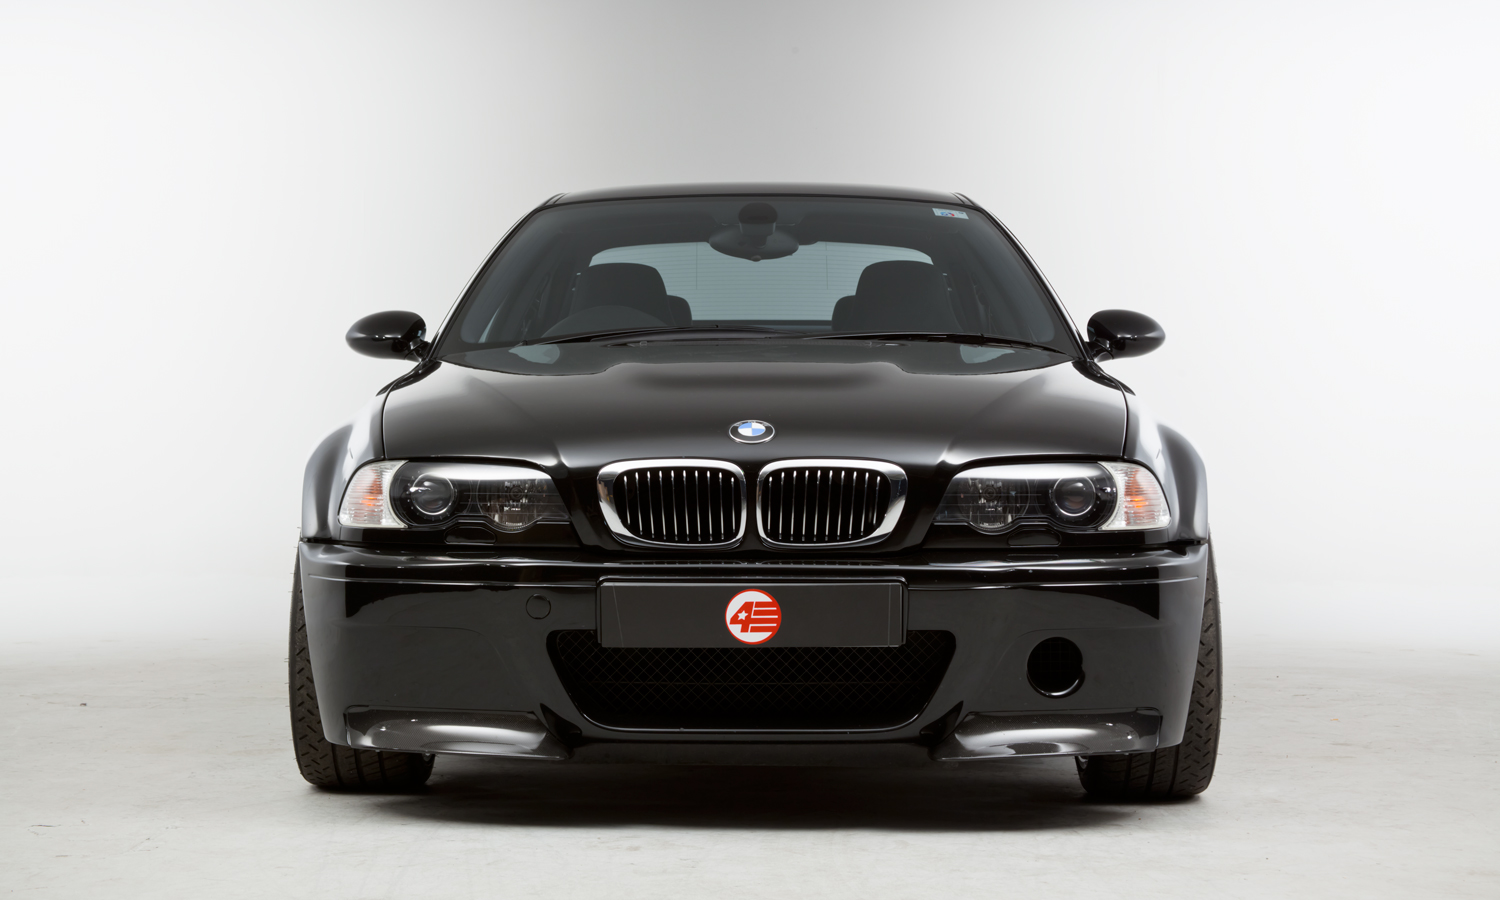 bmw e46 m3 csl. Black Bedroom Furniture Sets. Home Design Ideas